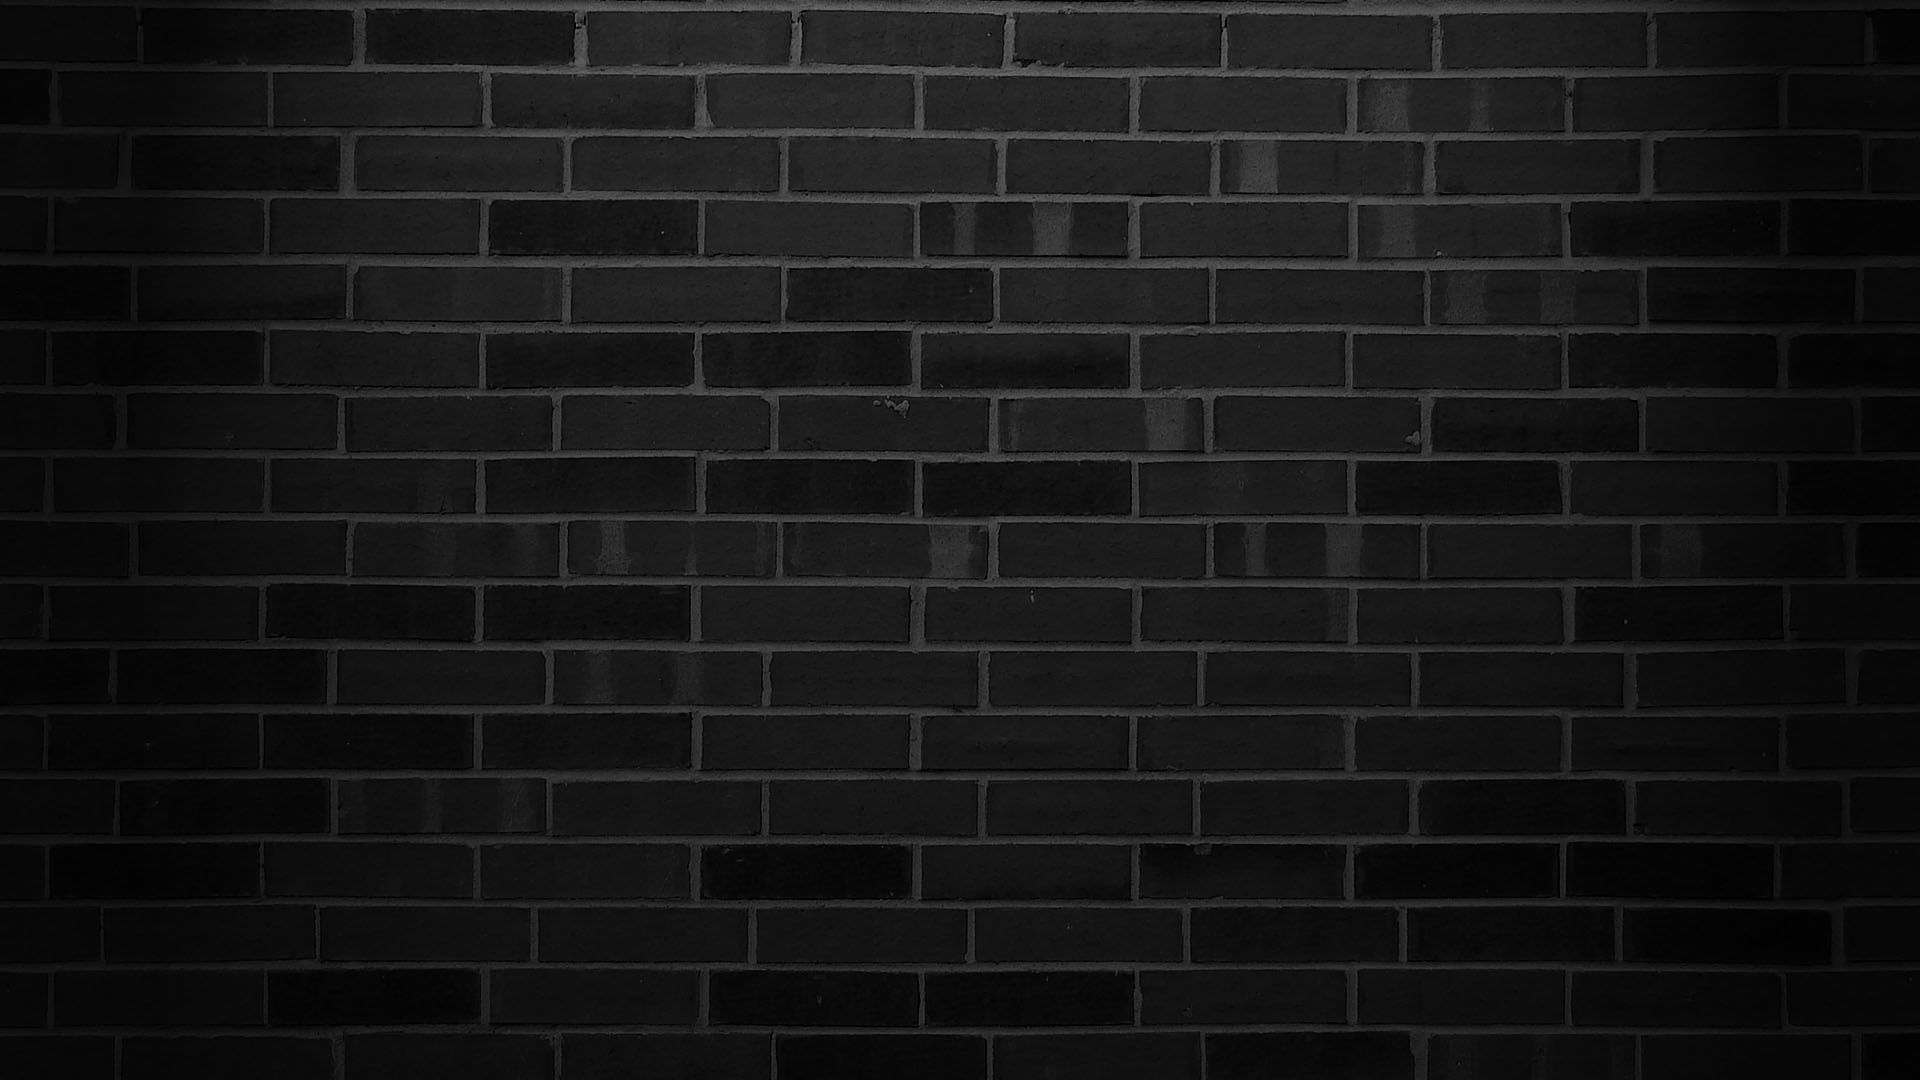 black-brick-wall-wide-wallpaper-28213 1,920×1,080 pixels | nn